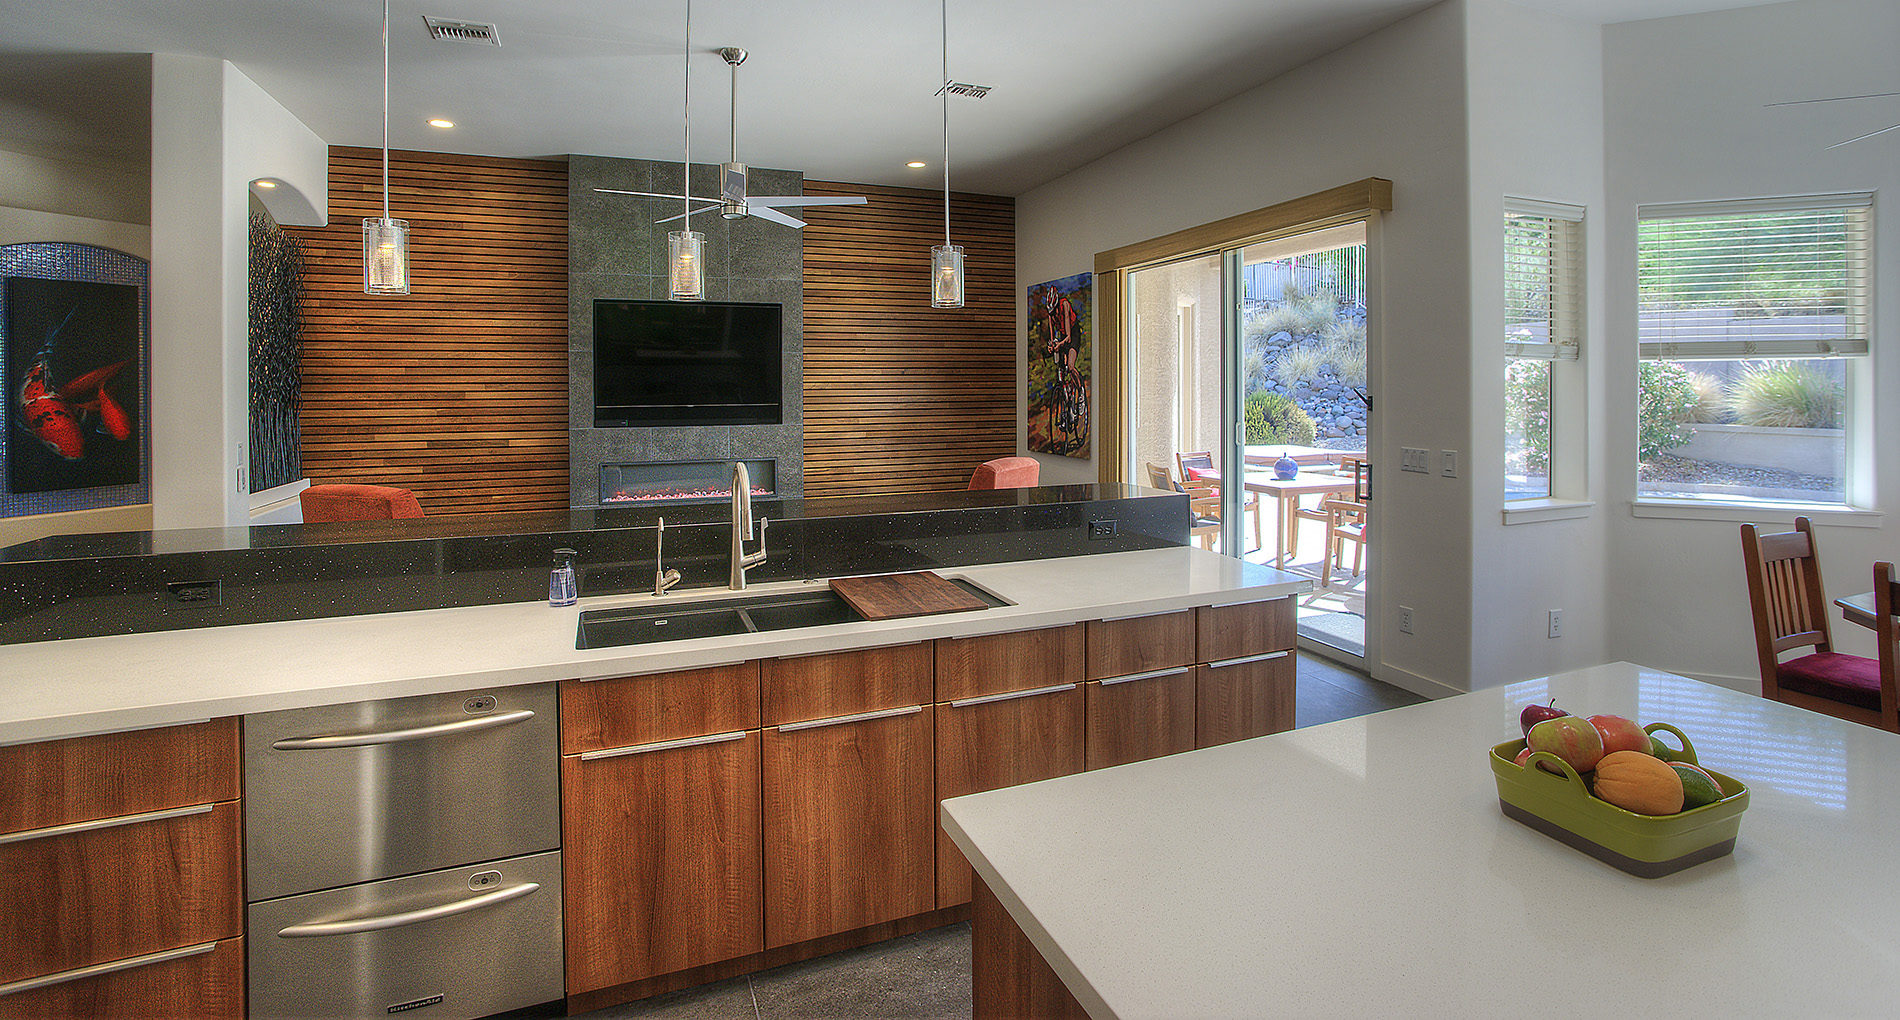 home remodeling & renovations in gilbert, az | alair homes gilbert